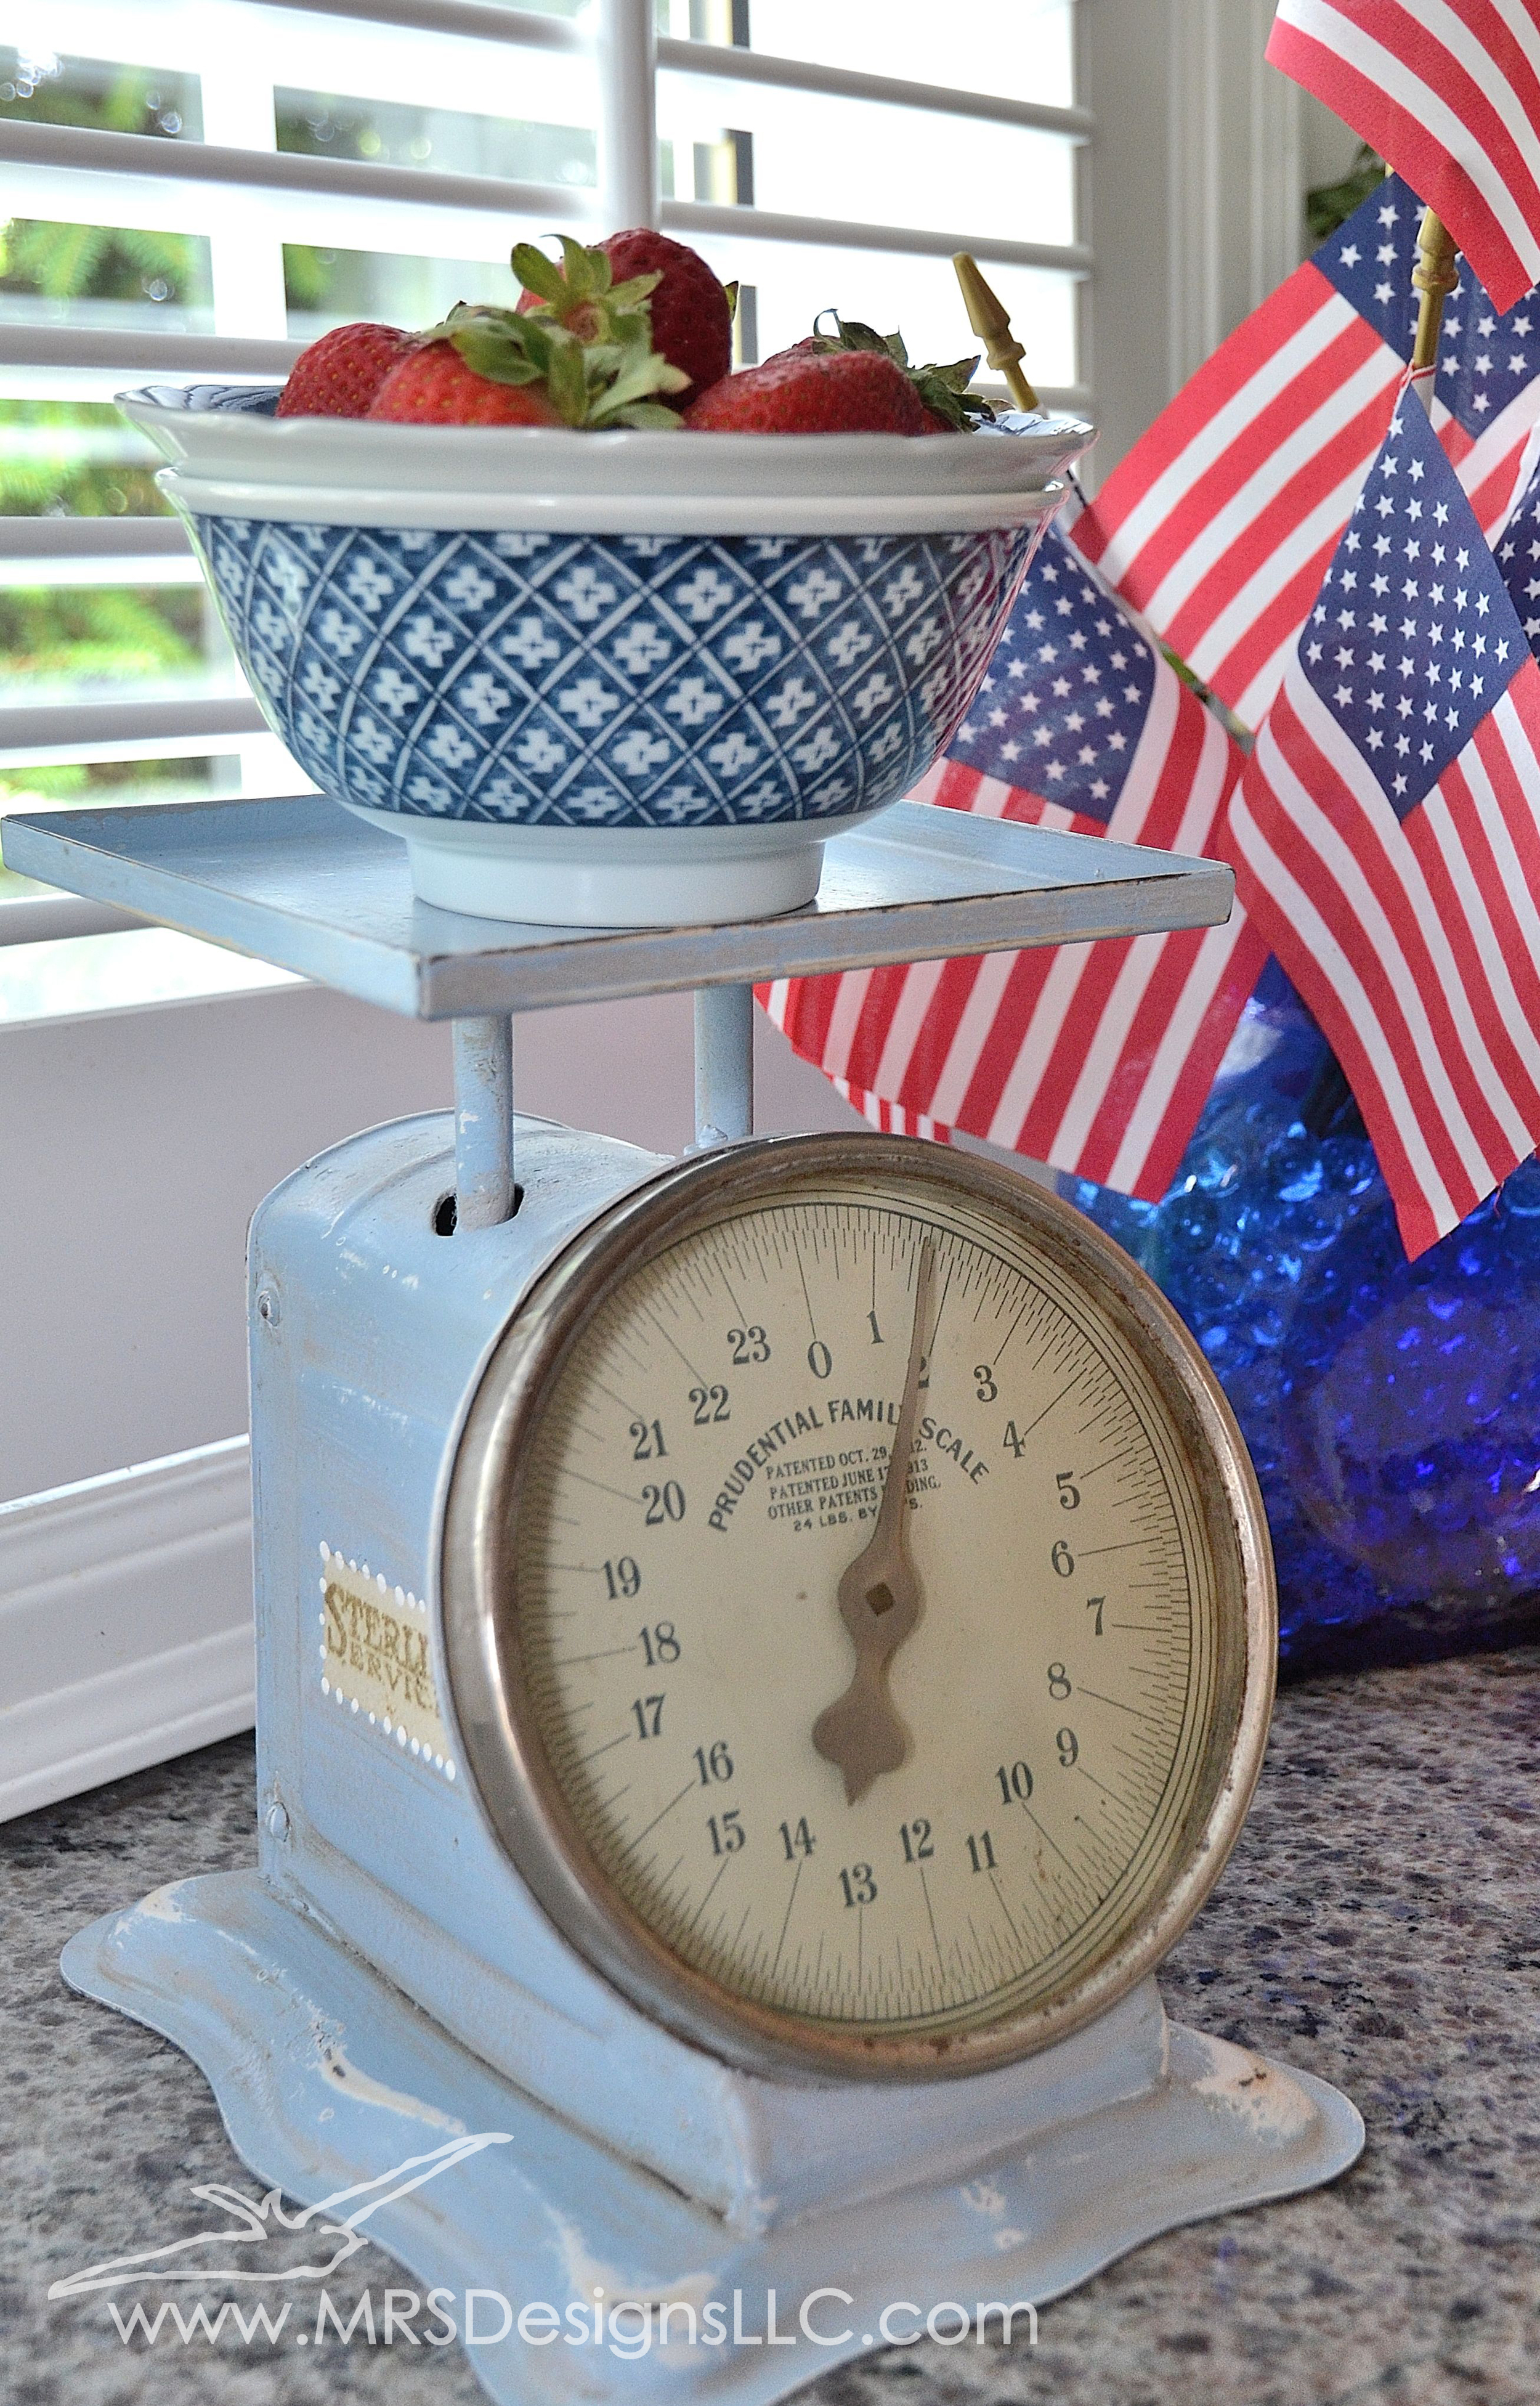 MRS Designs Blog - Using Vintage Scales to Decorate Your Home. Refinished scale, close up view